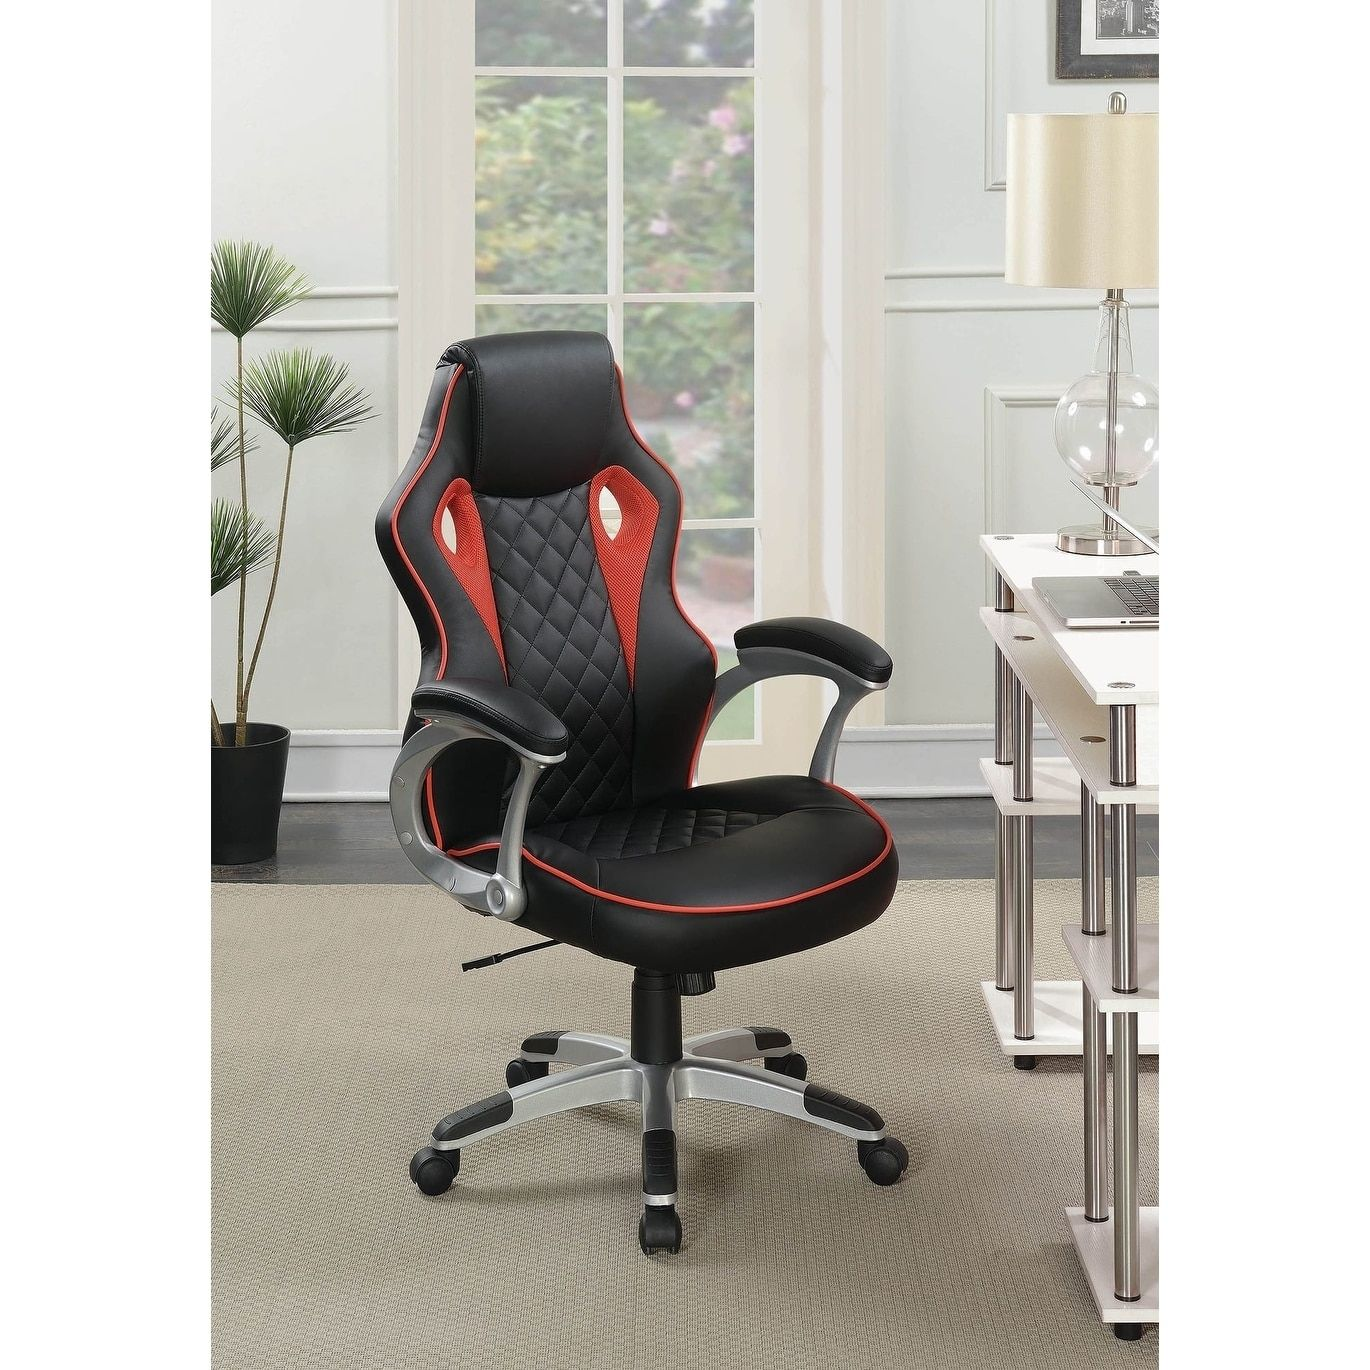 Tisbury Black and Red Swivel Office Chair with Casters